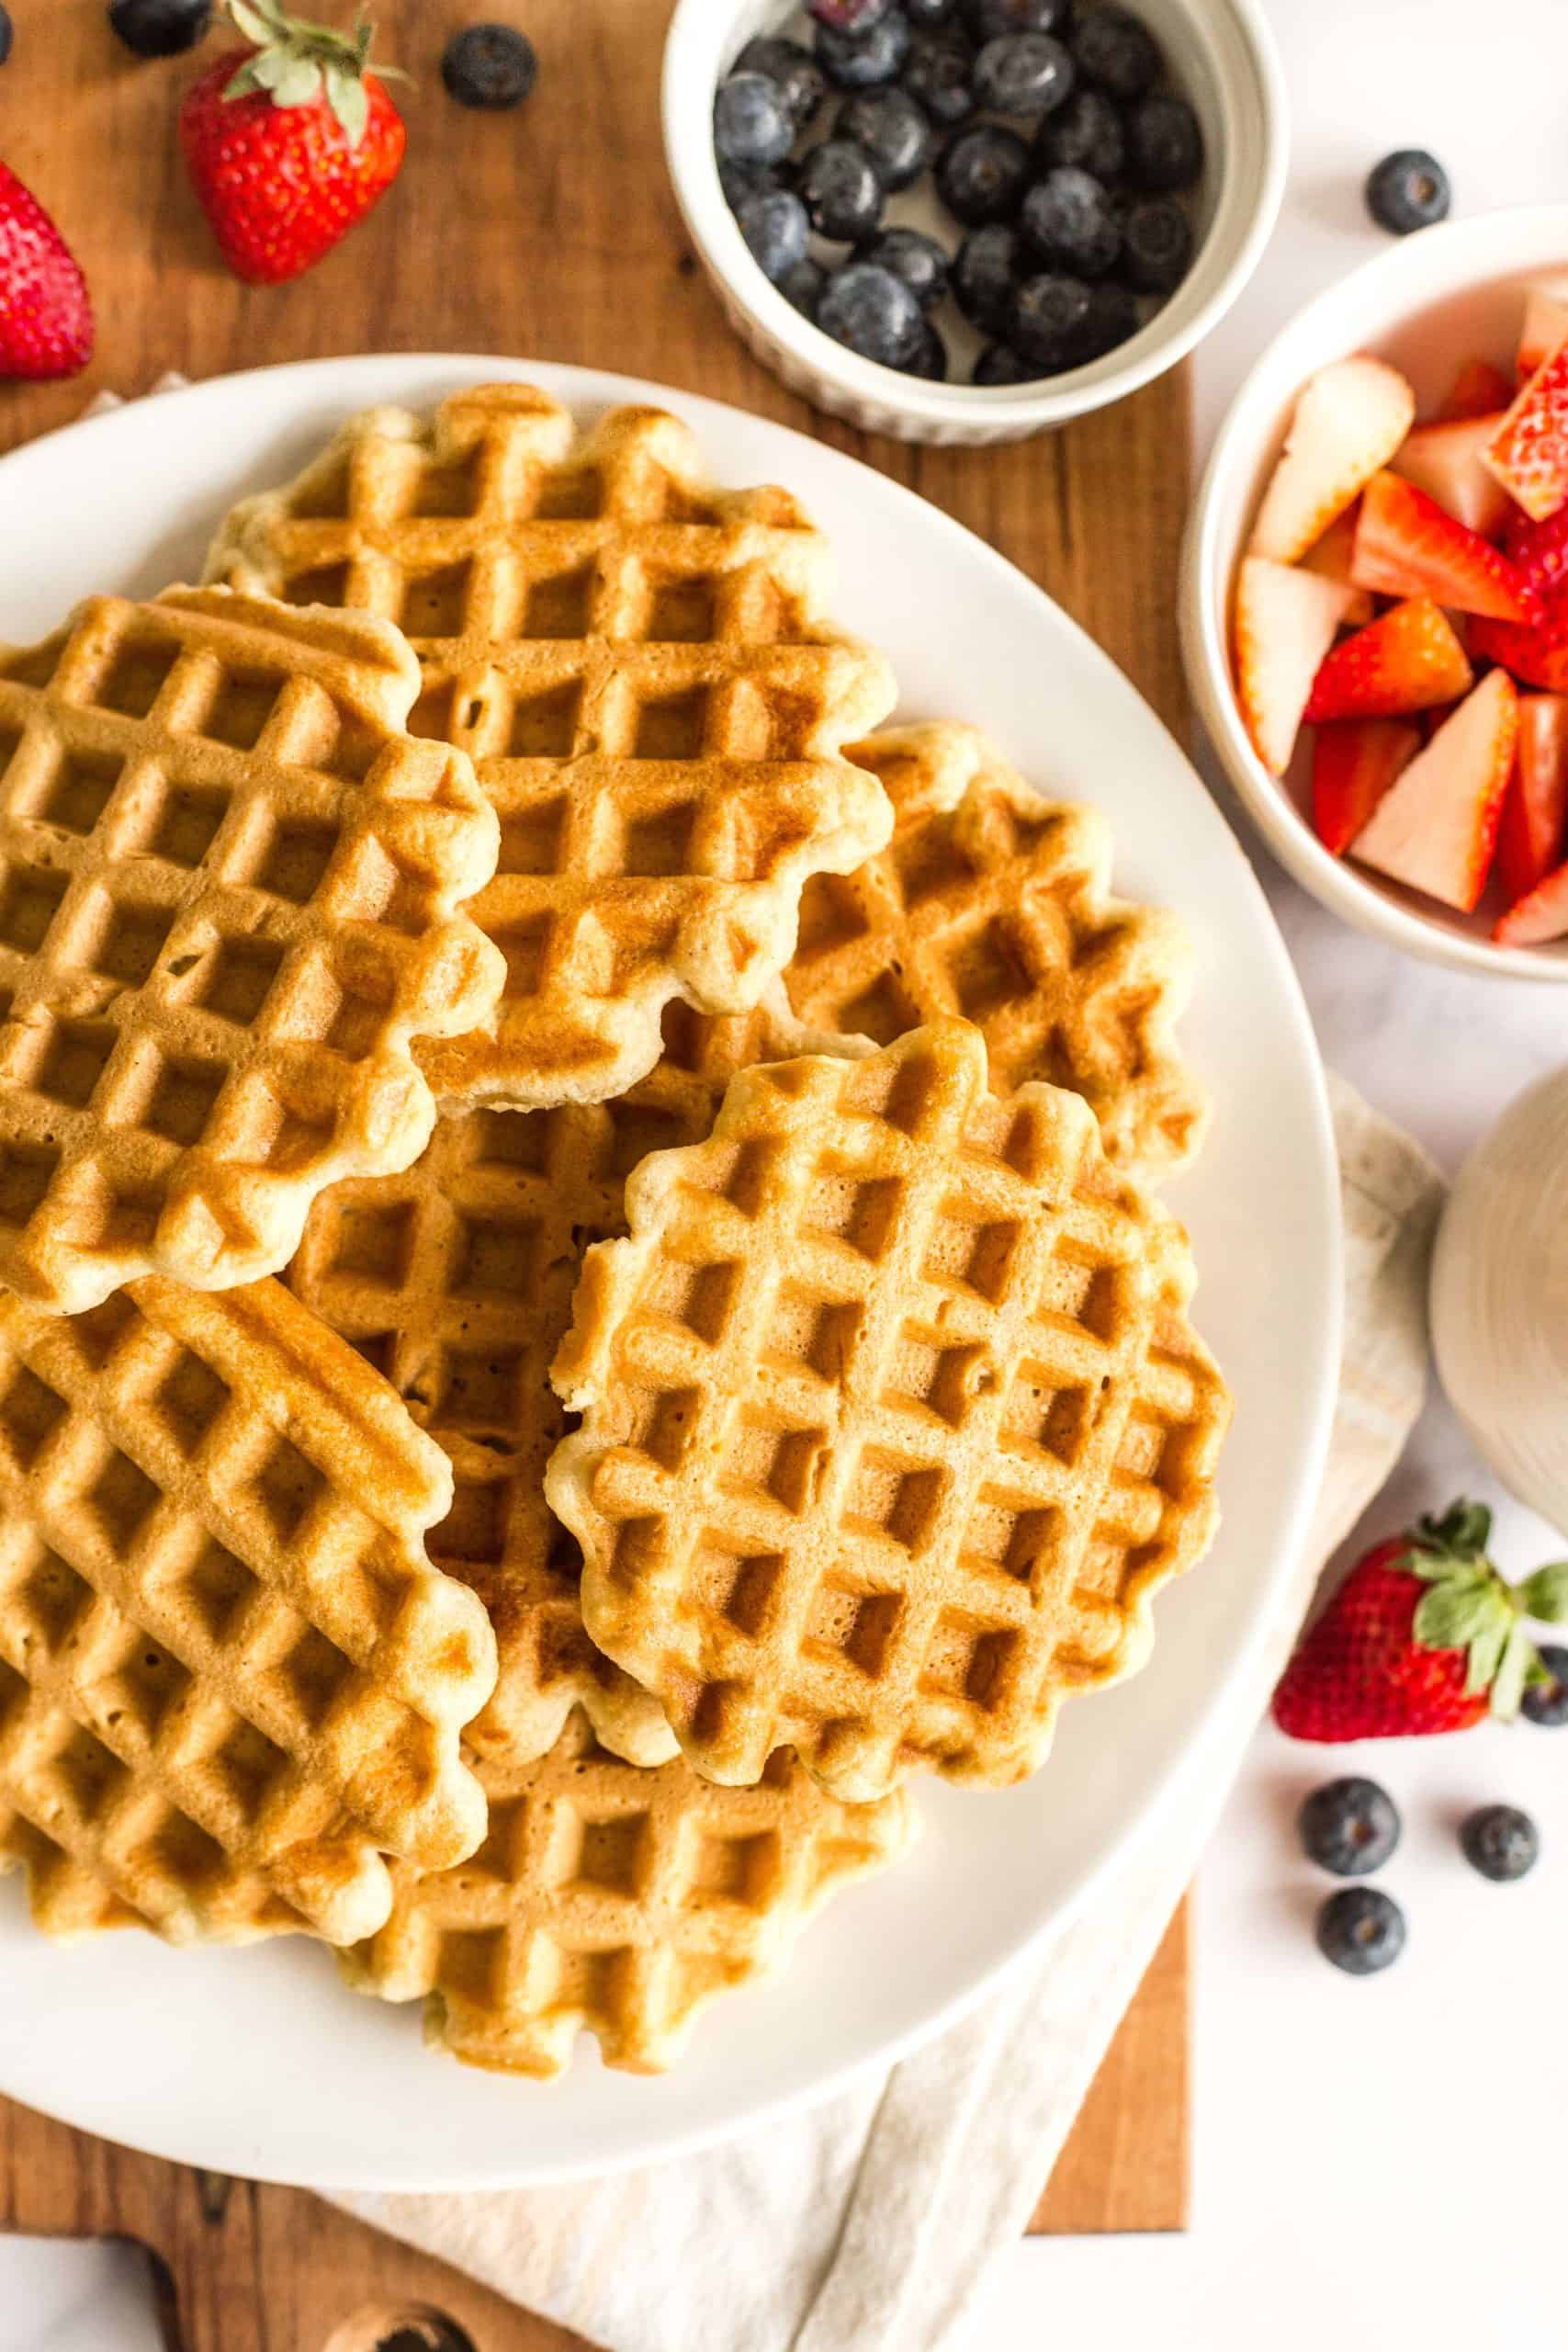 Gluten-free waffles on a plate and fresh berries in small bowls on a wooden board.